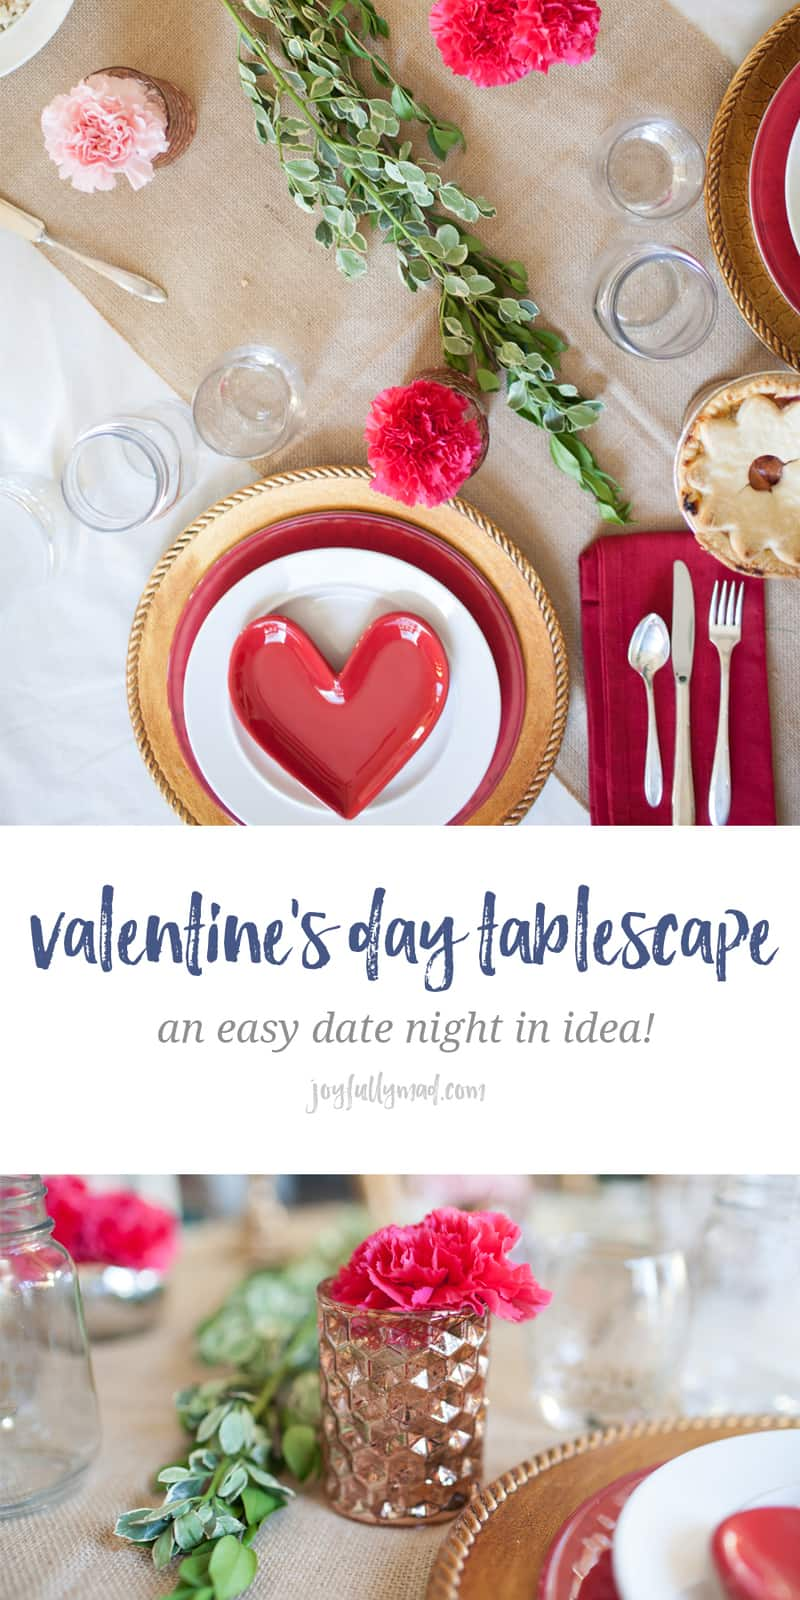 Looking For An Easy Date Night In For Valentineu0027s Day This Year? This Easy  Tablescape